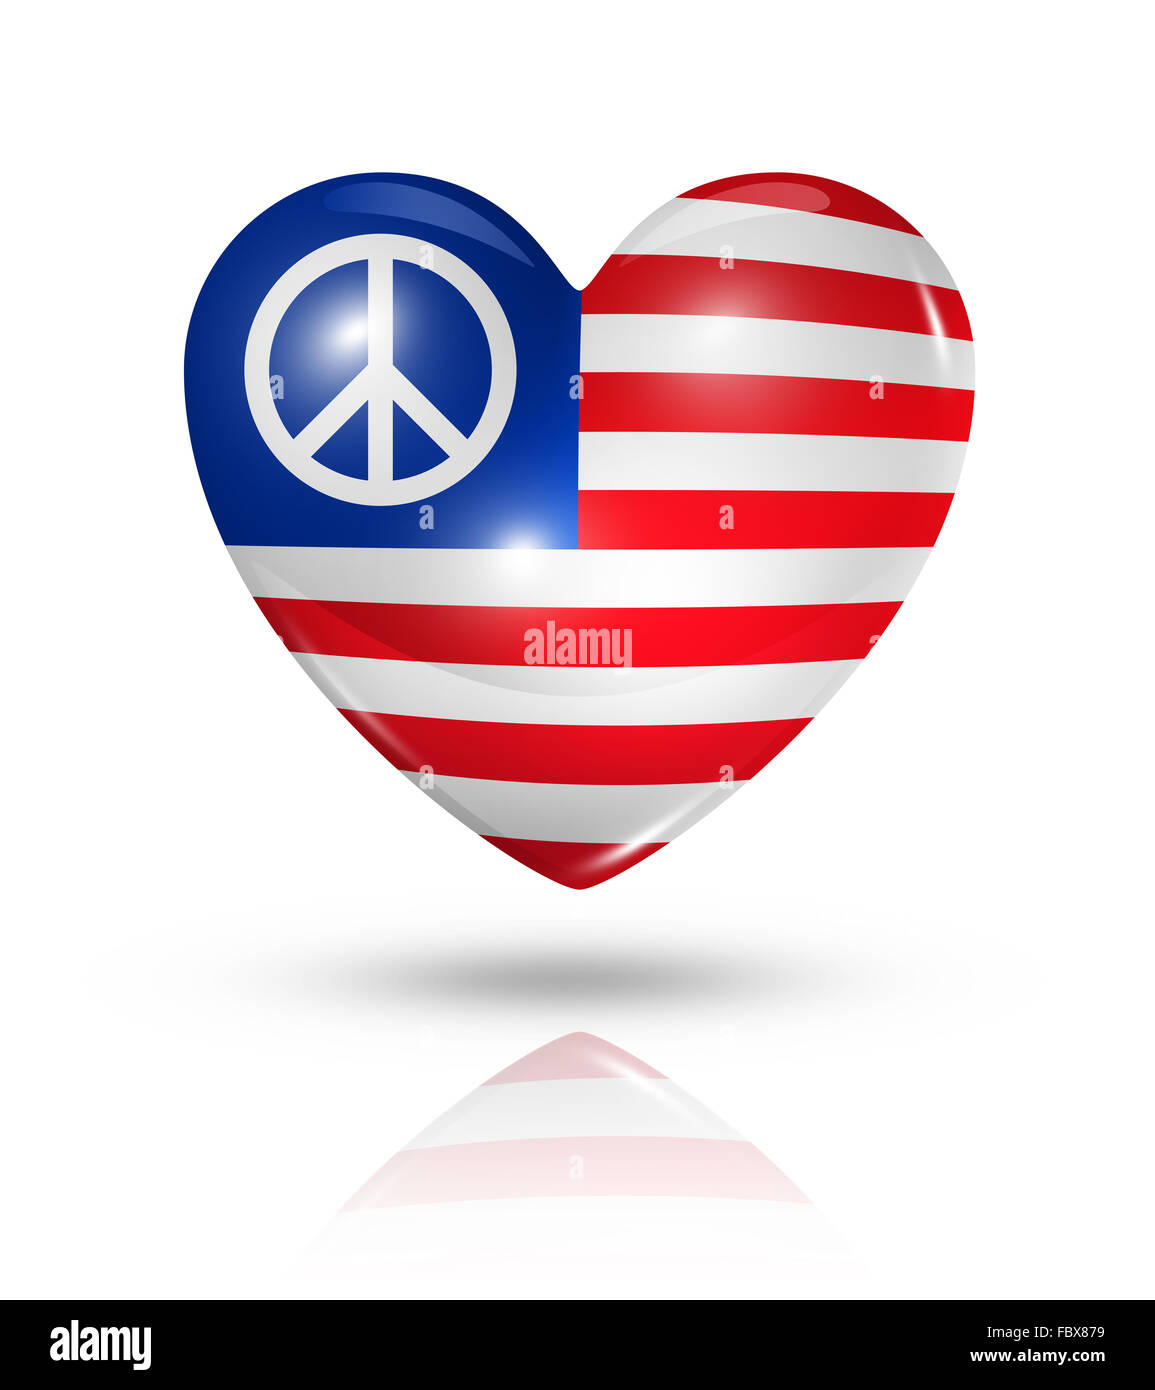 Usa Peace Love Symbol Heart Flag Icon Stock Photo 93390285 Alamy